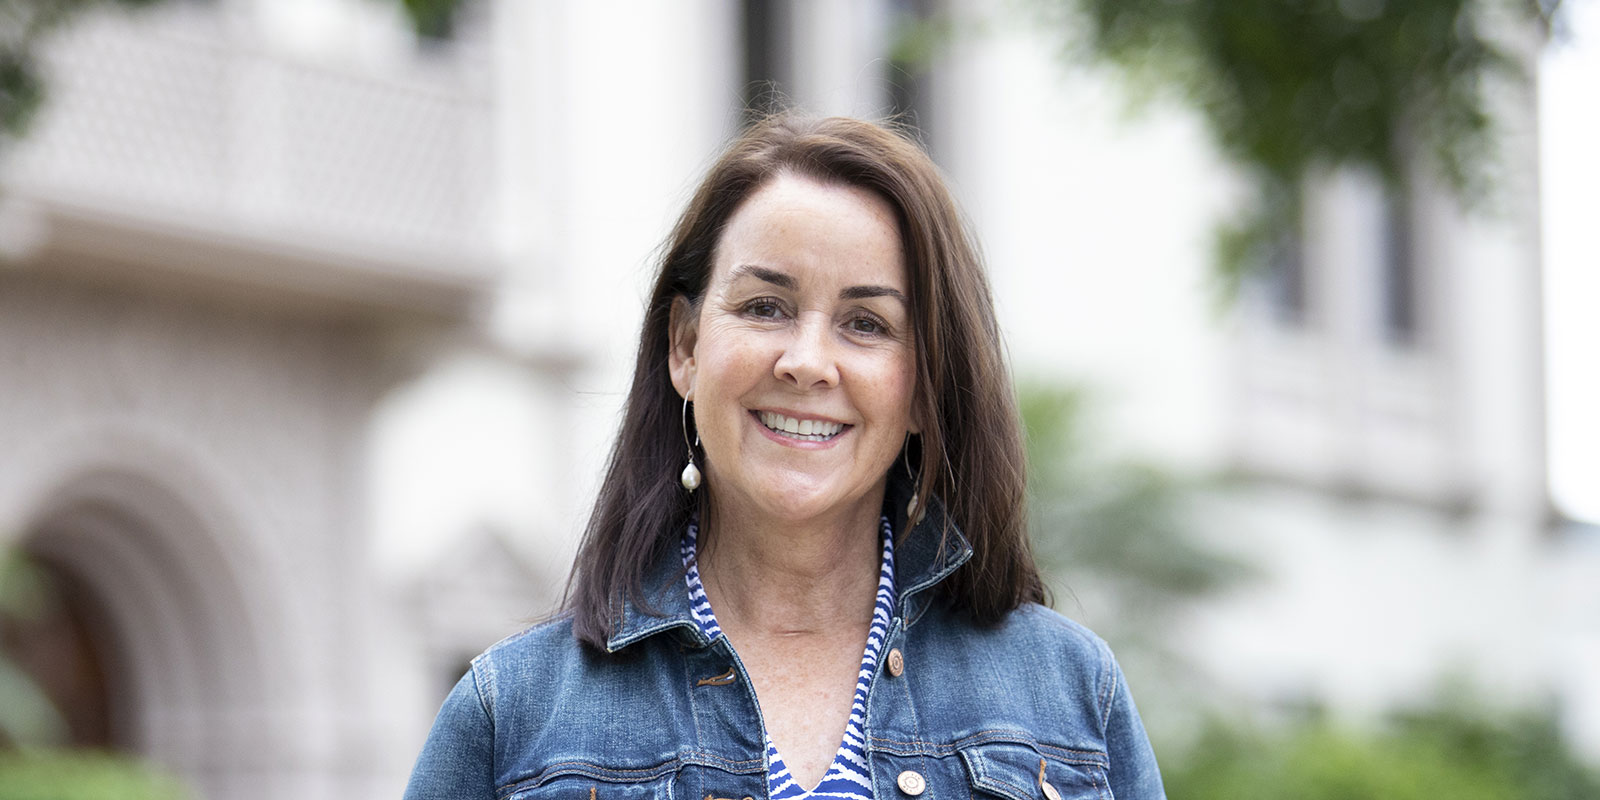 Kim Alessio '87 (BA), incoming president of USD's Alumni Association Board